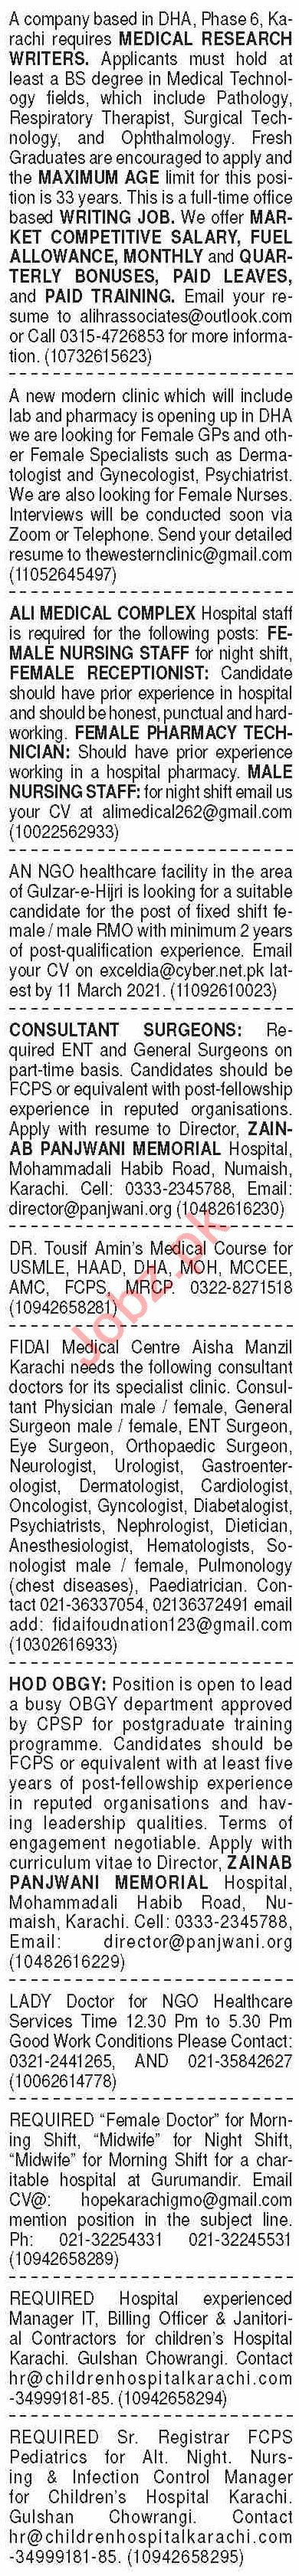 Dawn Sunday Classified Ads 7 March 2021 for Medical Staff